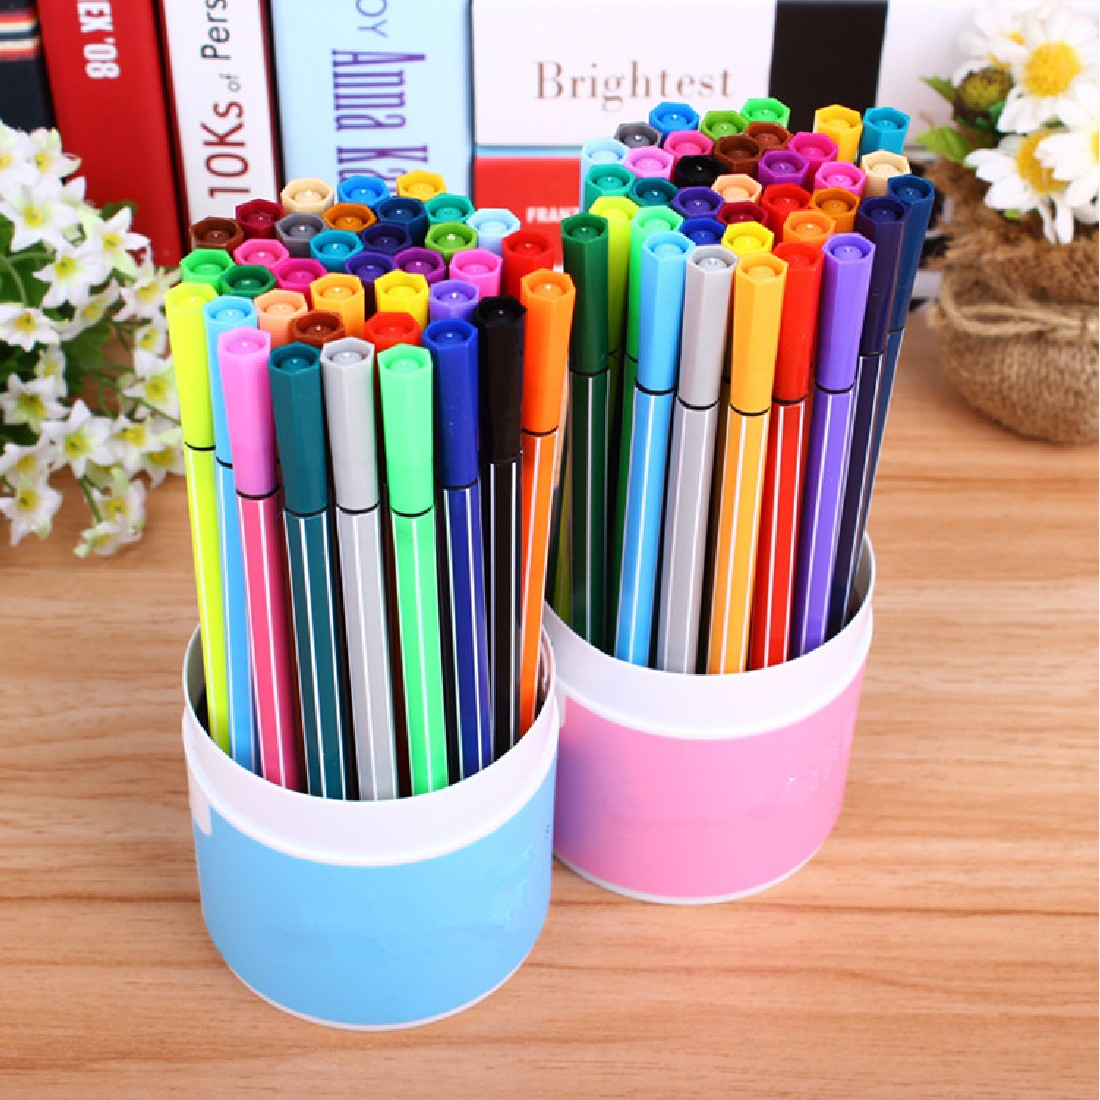 36Pcs Water Color Pen Brush Marker Highlighter Stationery Markers Art Supplies Material For School Kids touchnew 60 colors artist dual head sketch markers for manga marker school drawing marker pen design supplies 5type